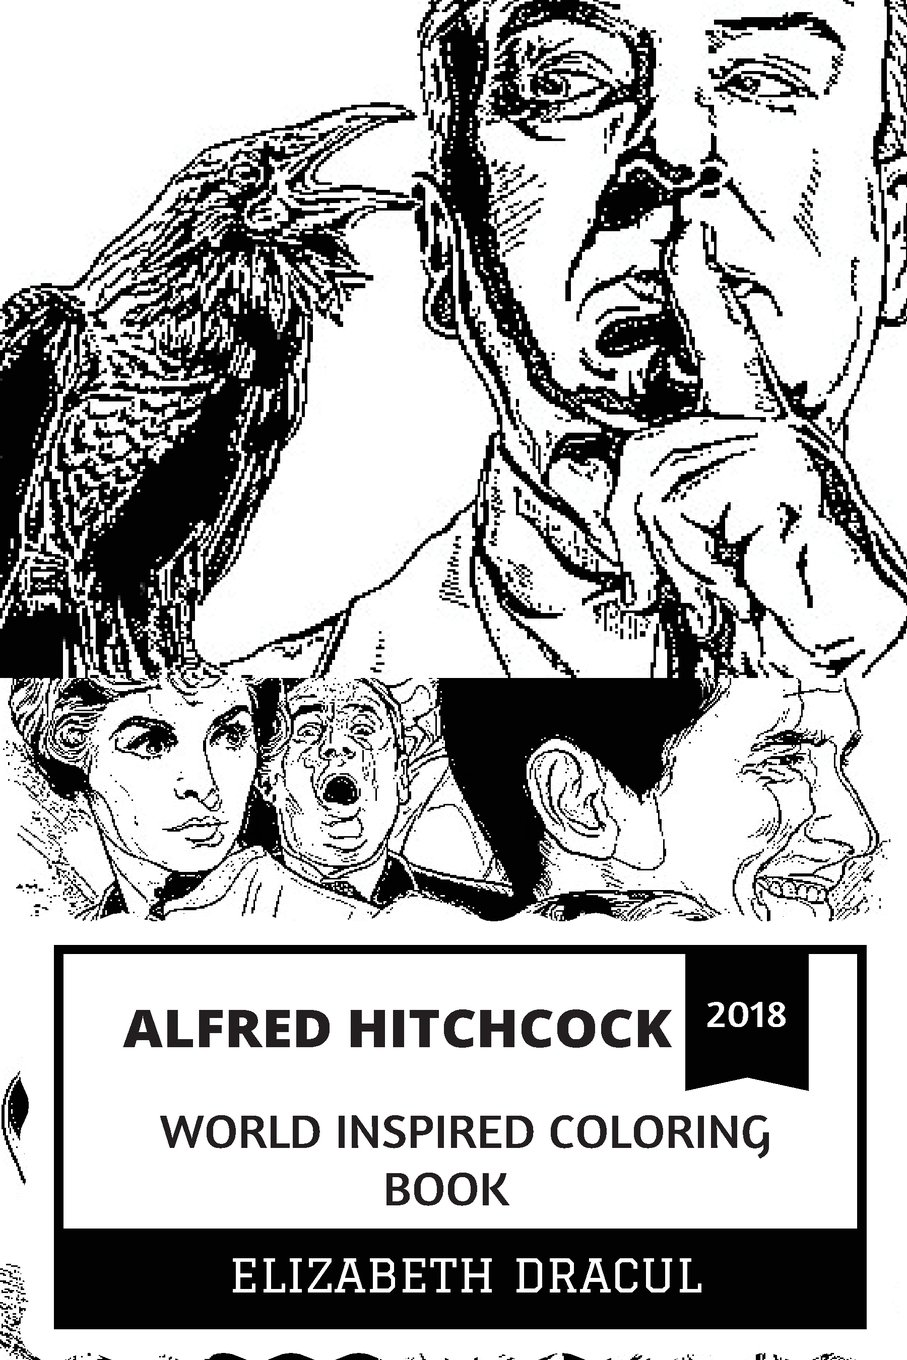 Alfred Hitchcock World Inspired Coloring Book: The Master of Suspense and Psycho Mastermind, Hollywood Cultural Icon and Greatest Filmaker in History ... Adult Coloring Book (Alfred Hitchcock Books) pdf